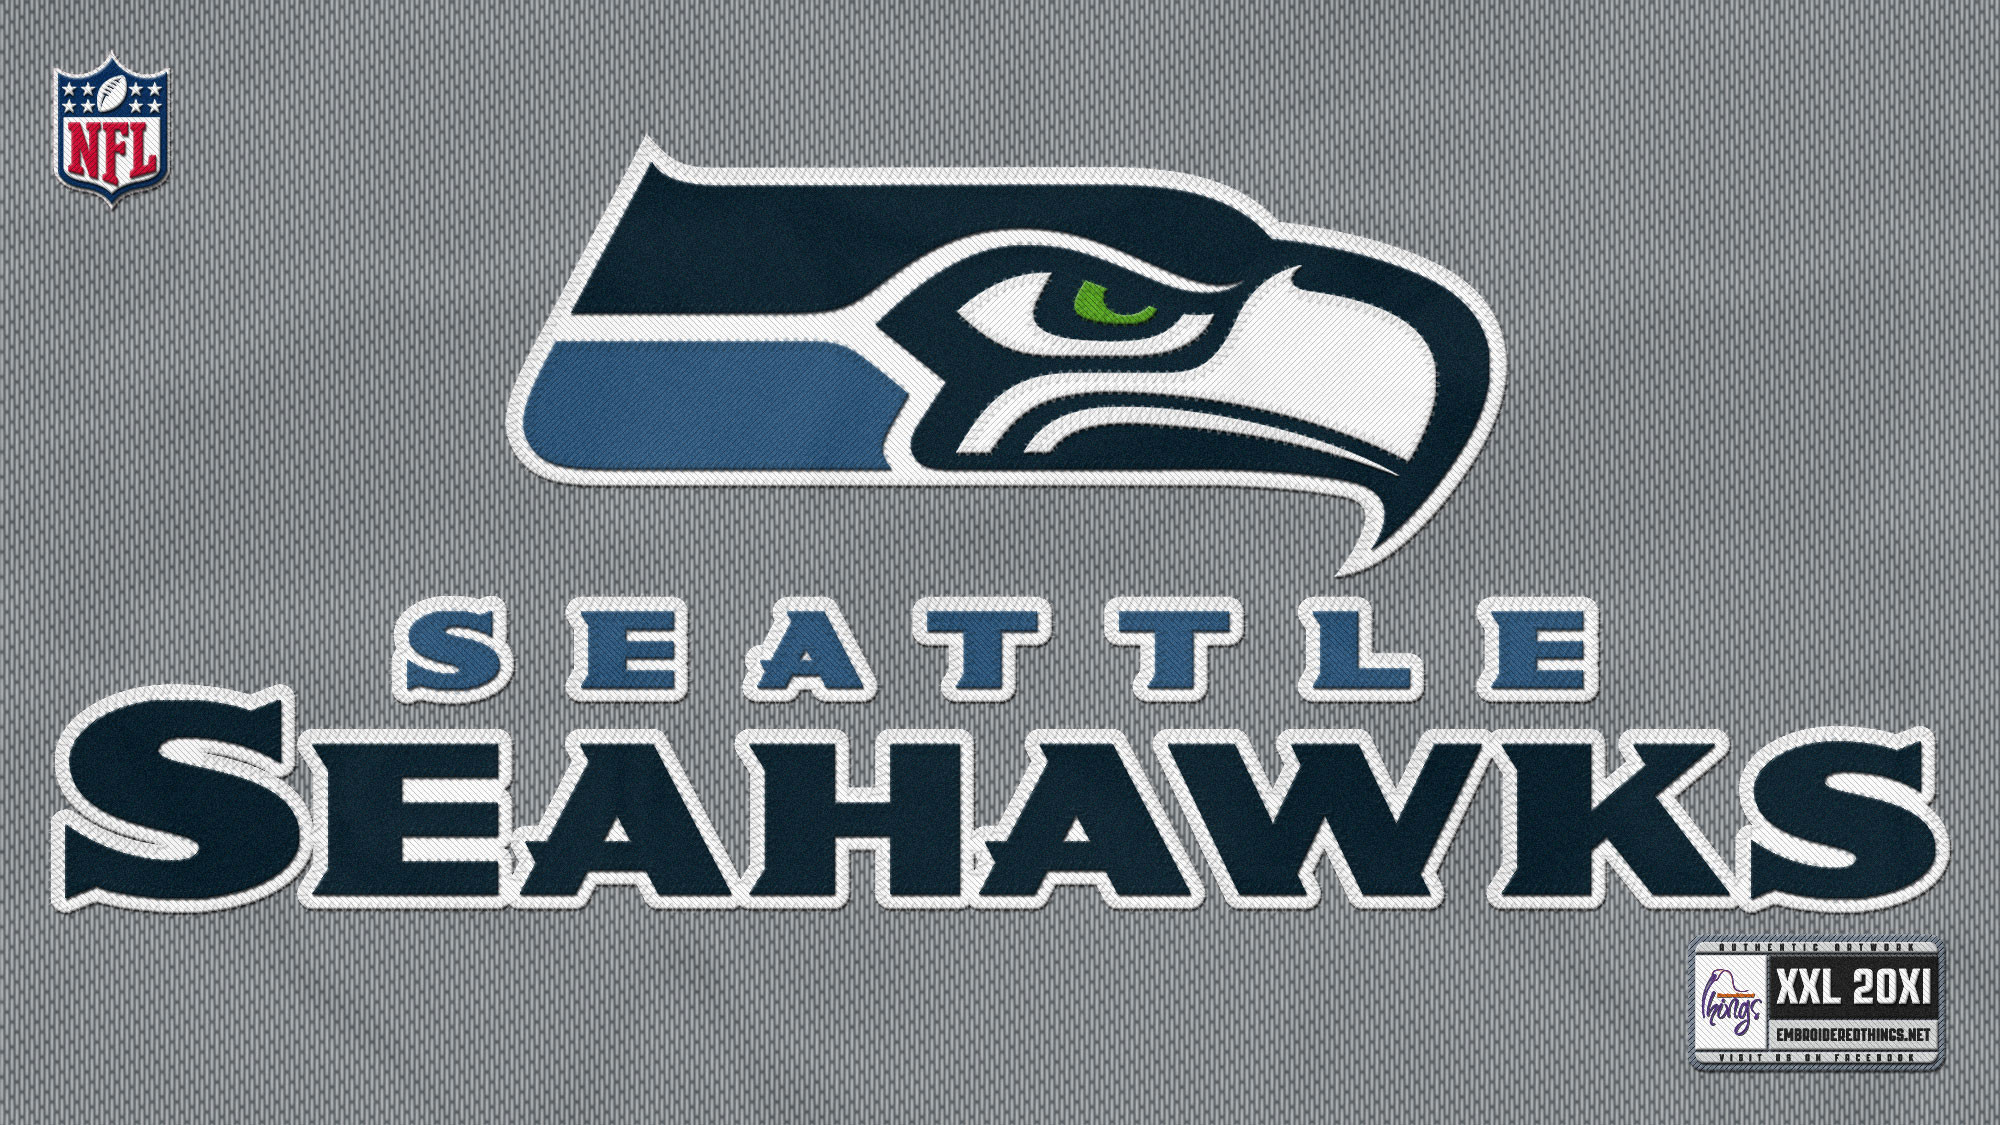 Seattle Seahawks Wallpaper 1920x1080: Seattle Seahawks IPhone 6 Wallpaper (68+ Images